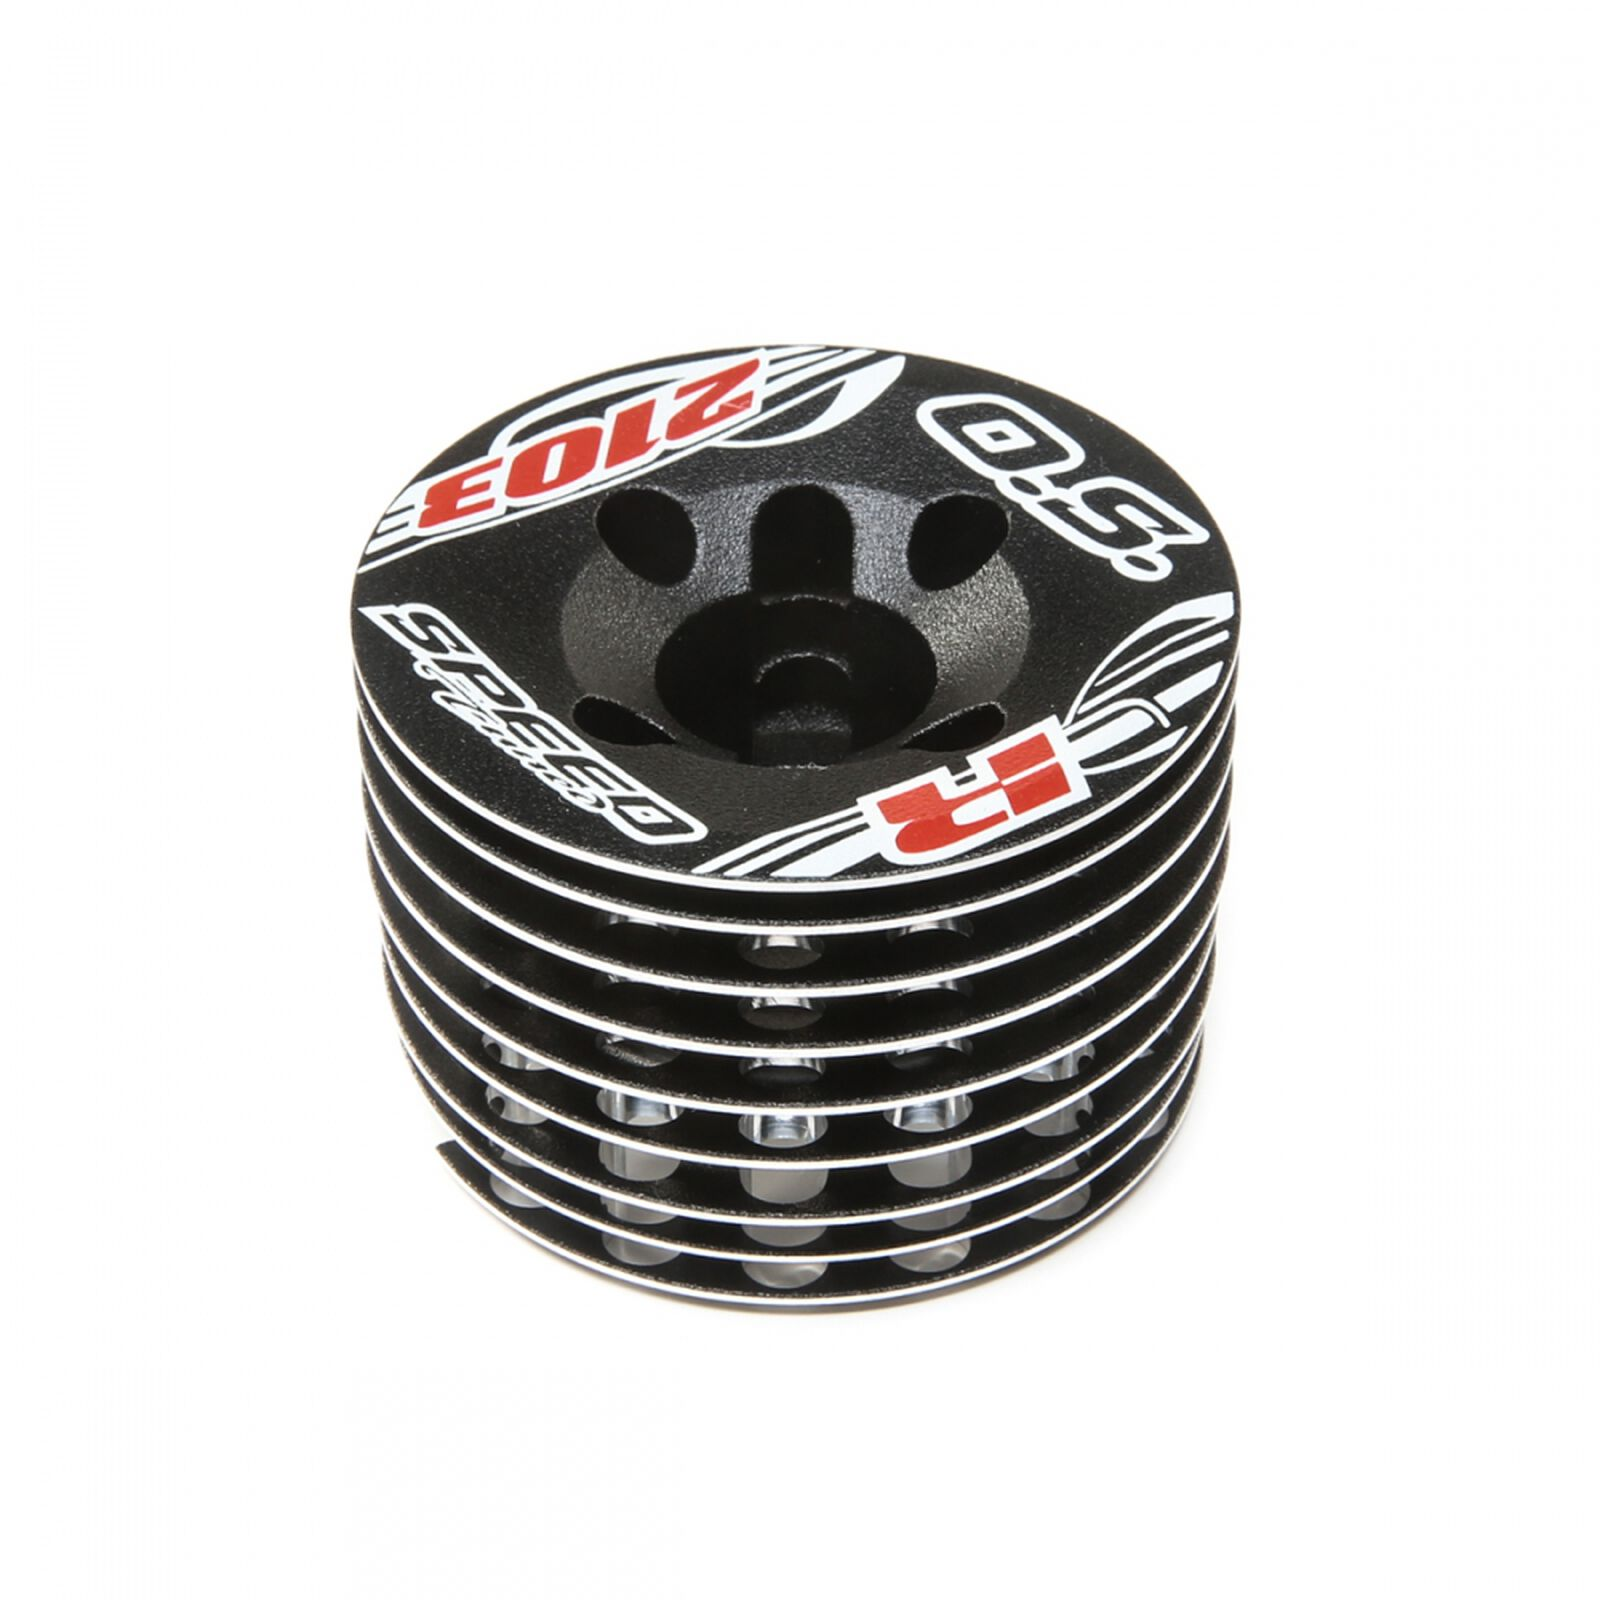 Outer Cylinder Head: R2103 Speed